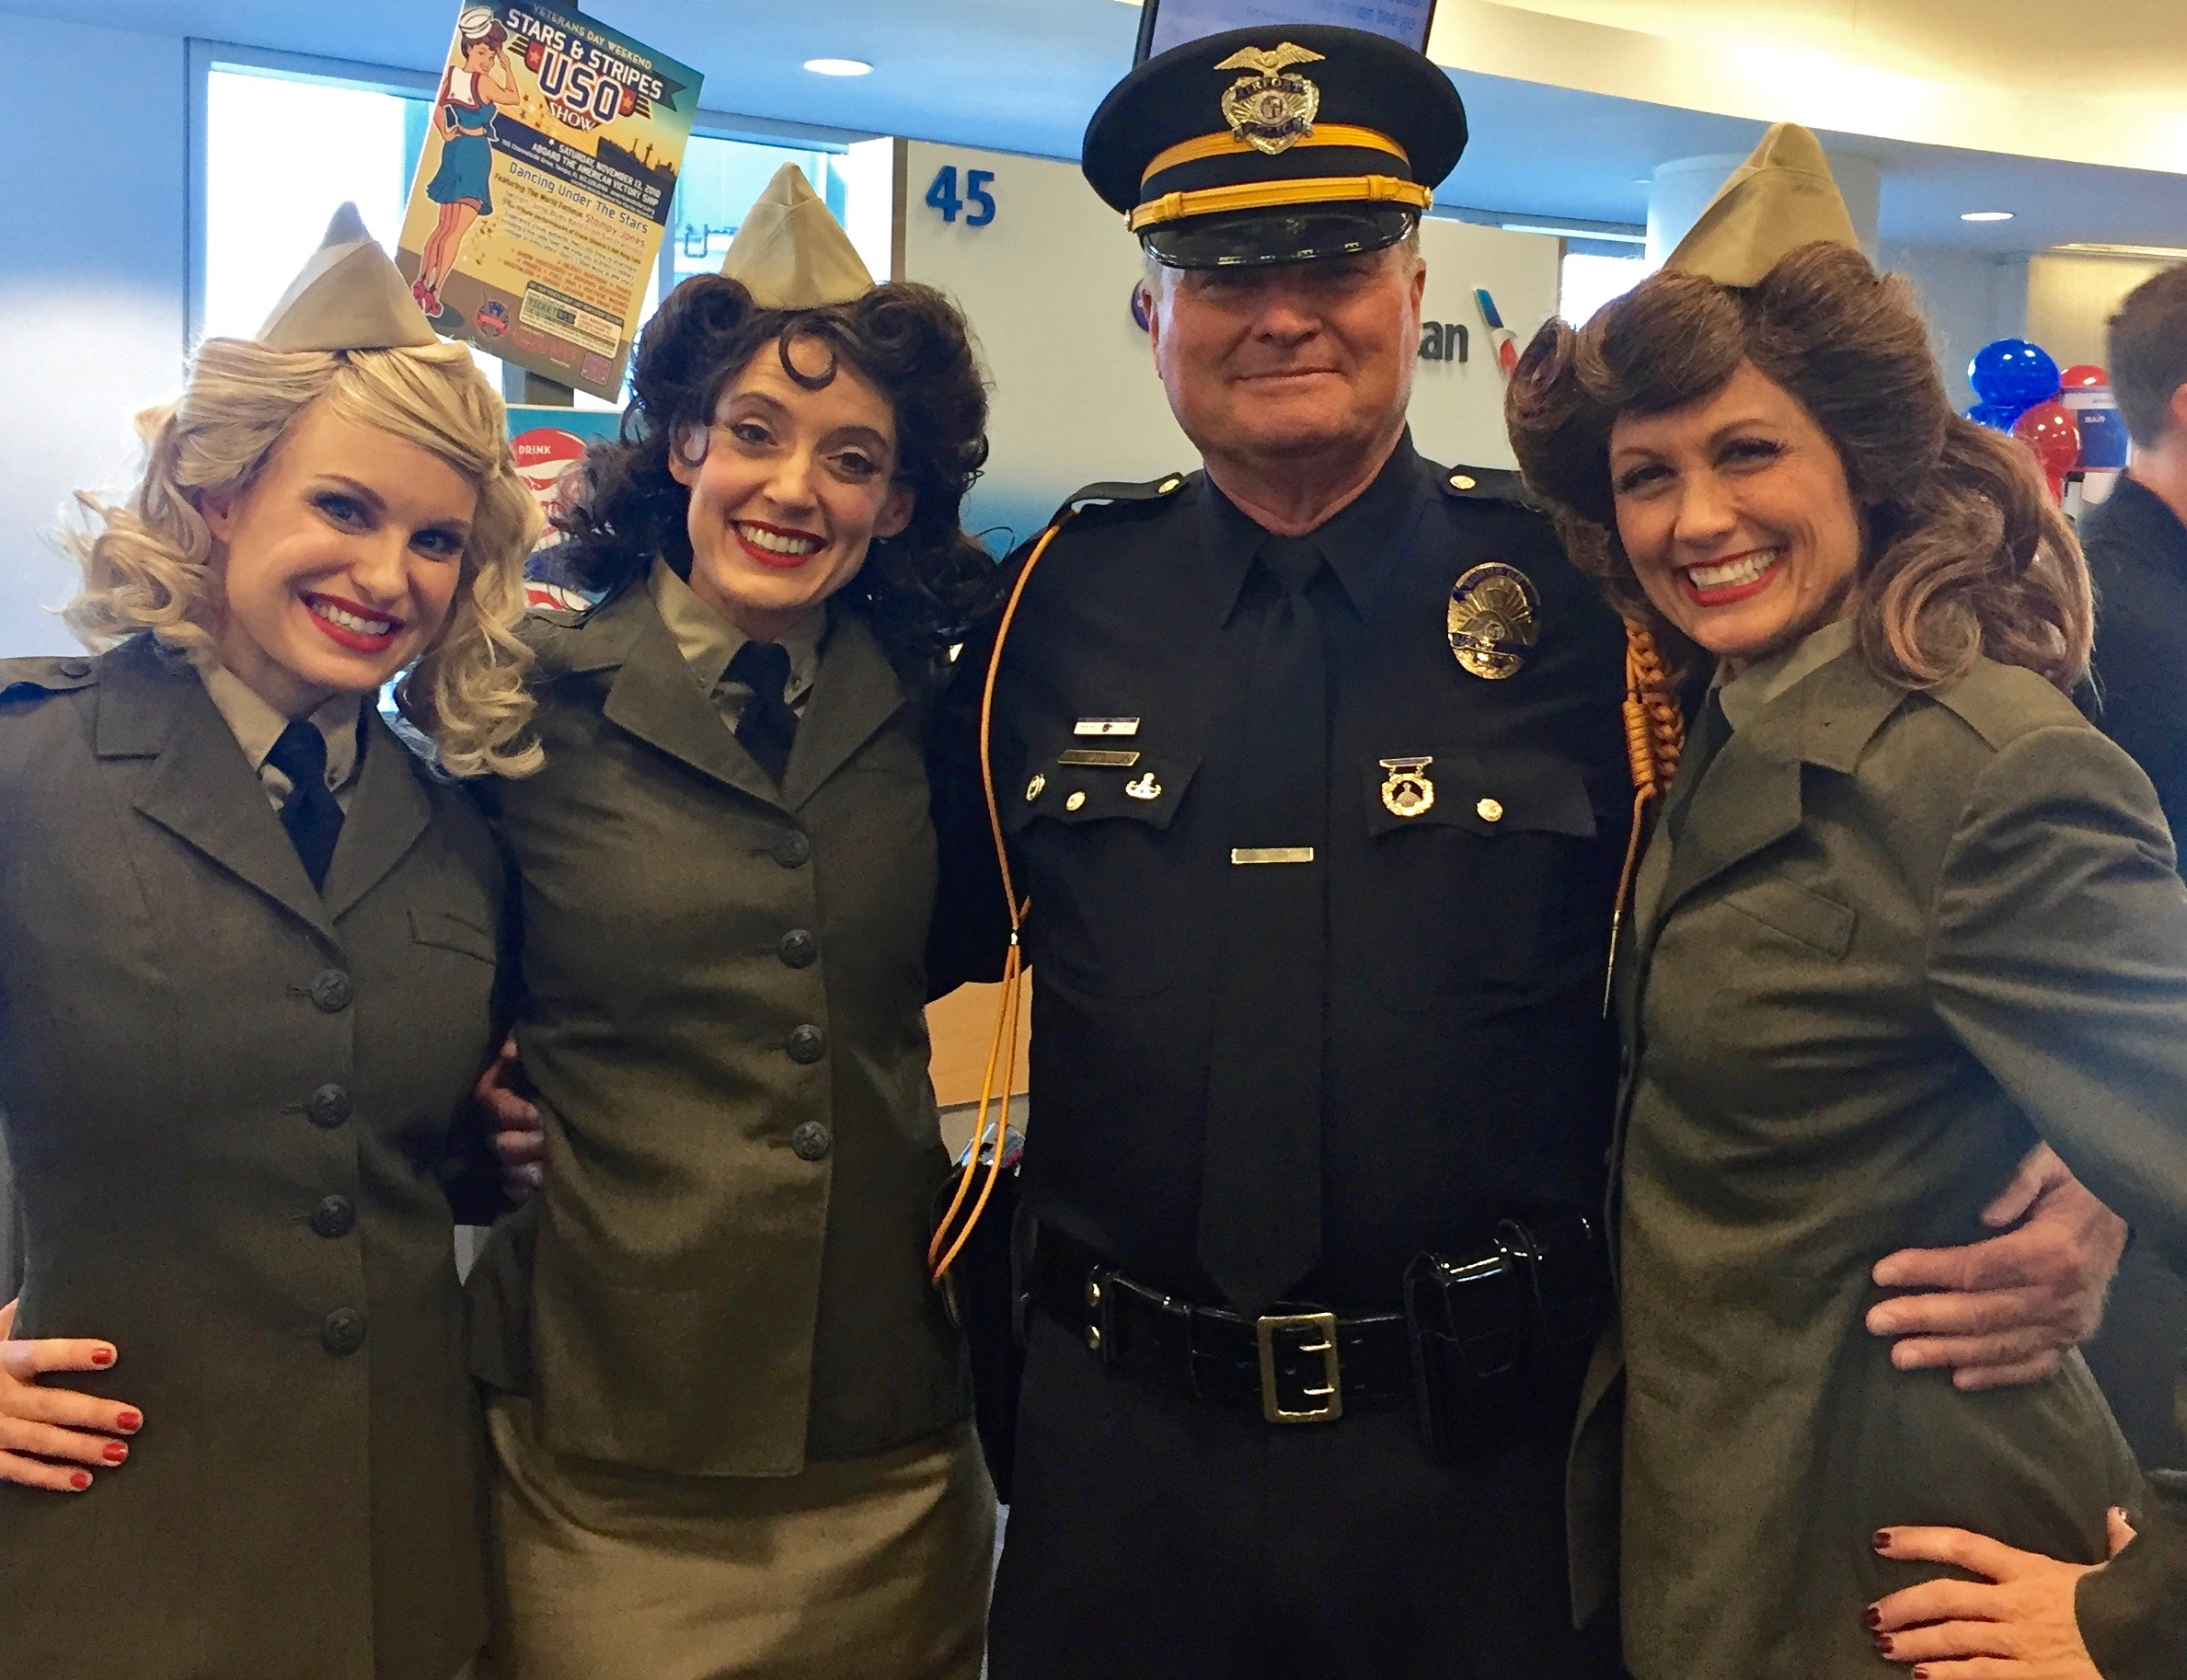 The Swing Dolls with one of LA's finest